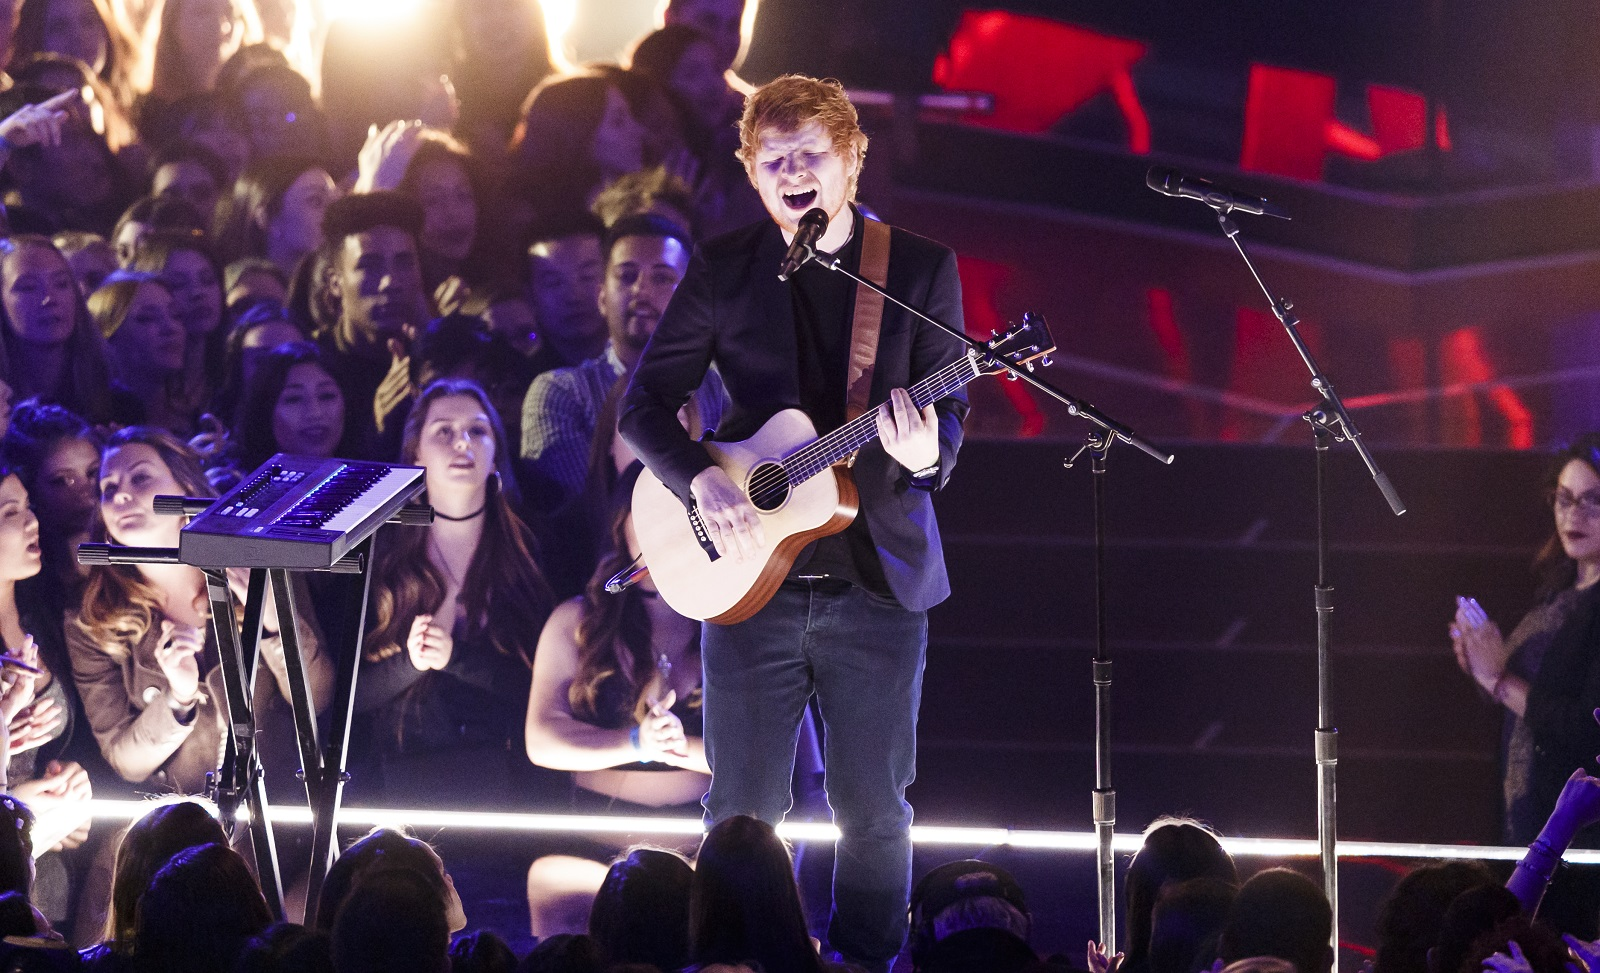 English pop star Ed Sheeran will come to Buffalo in July. (Getty Images)